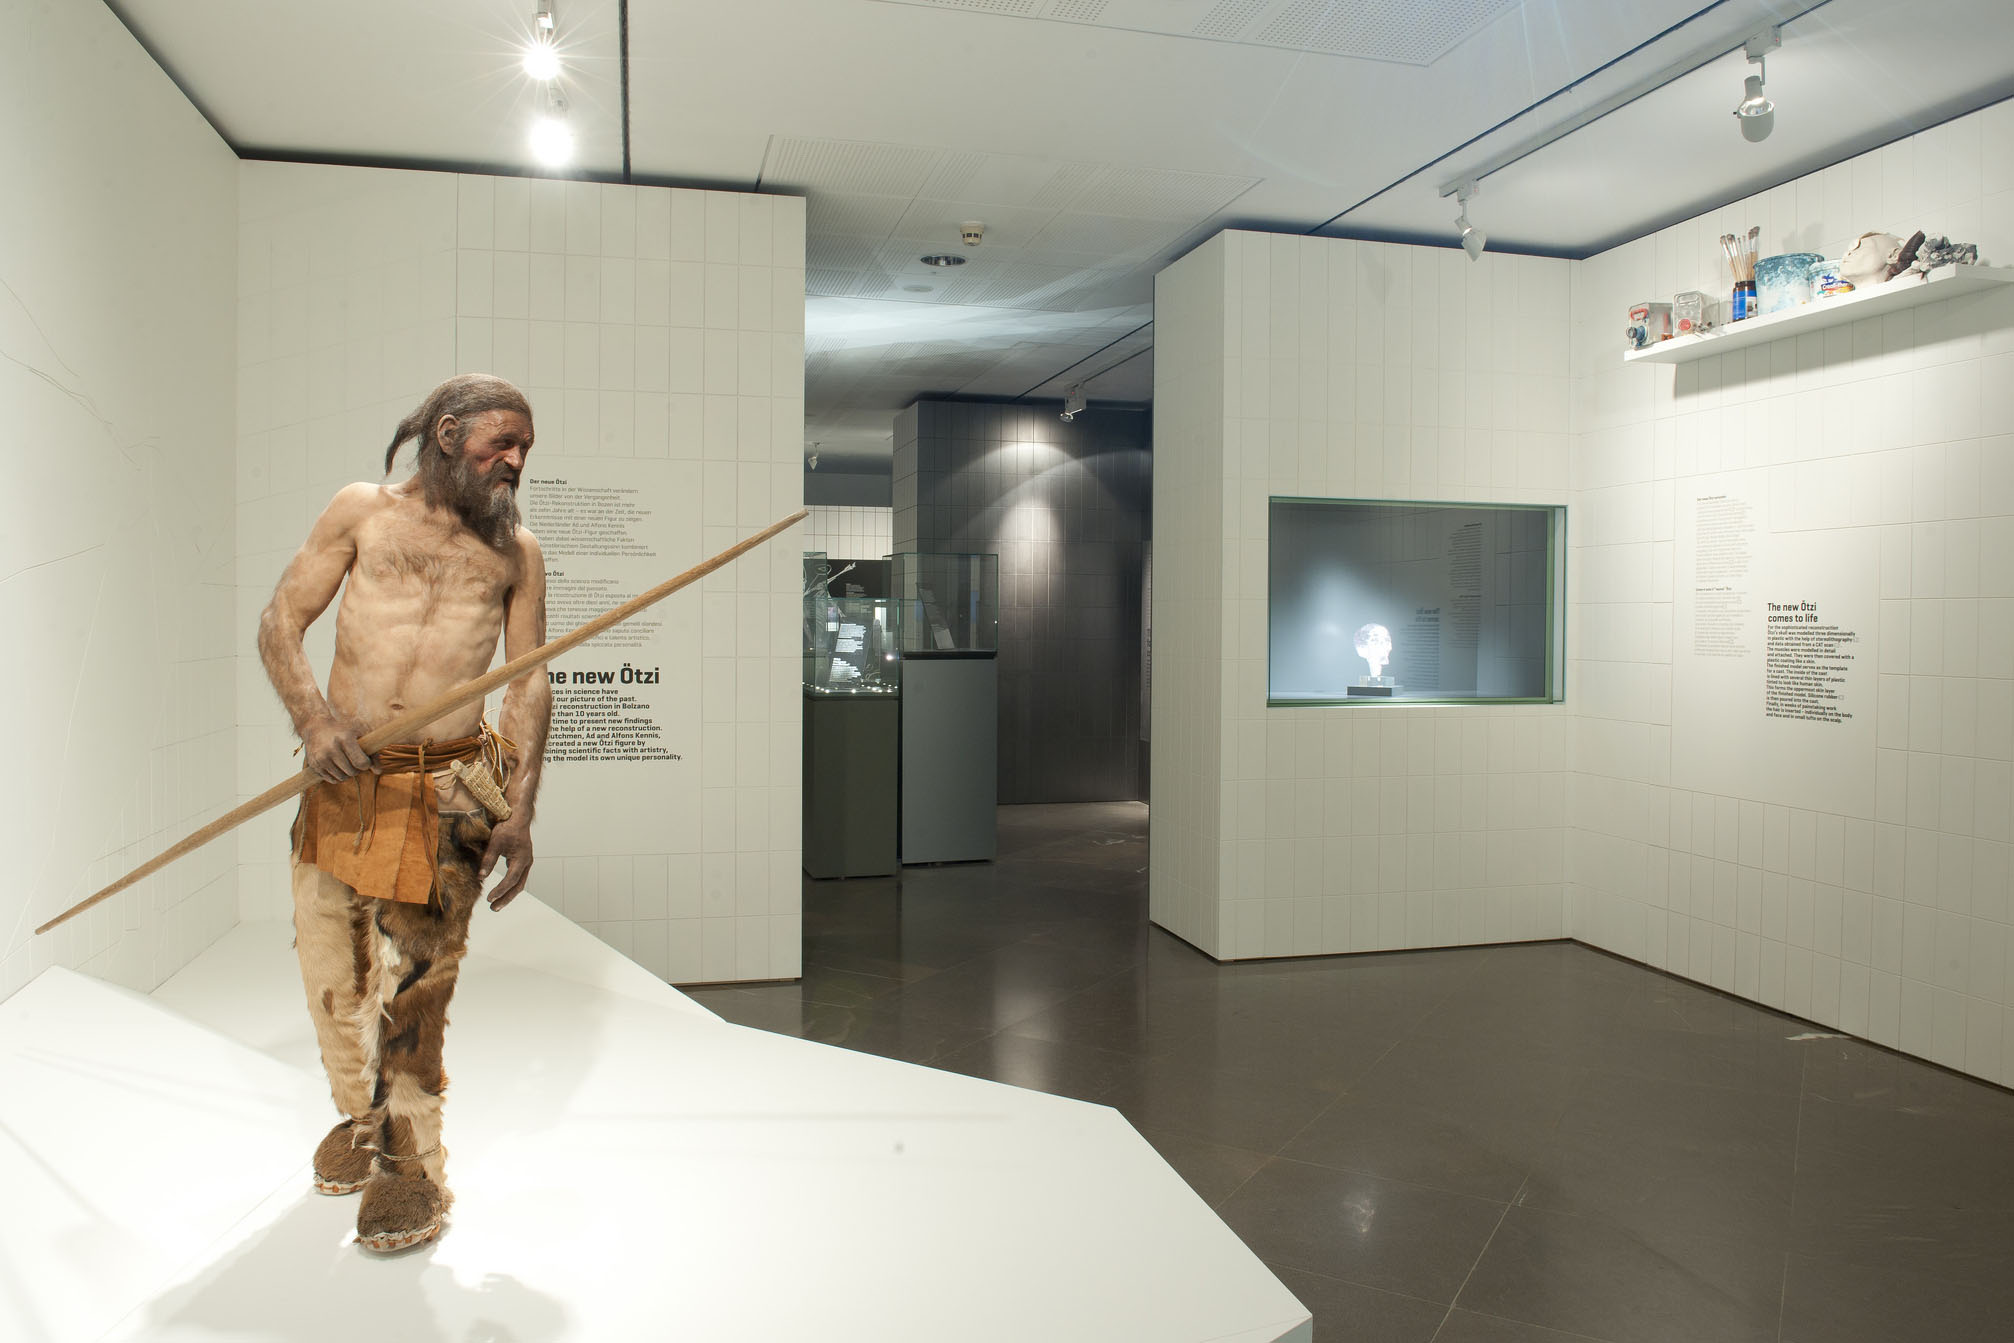 a museum exhibit featuring a reconstruction of Ötzi